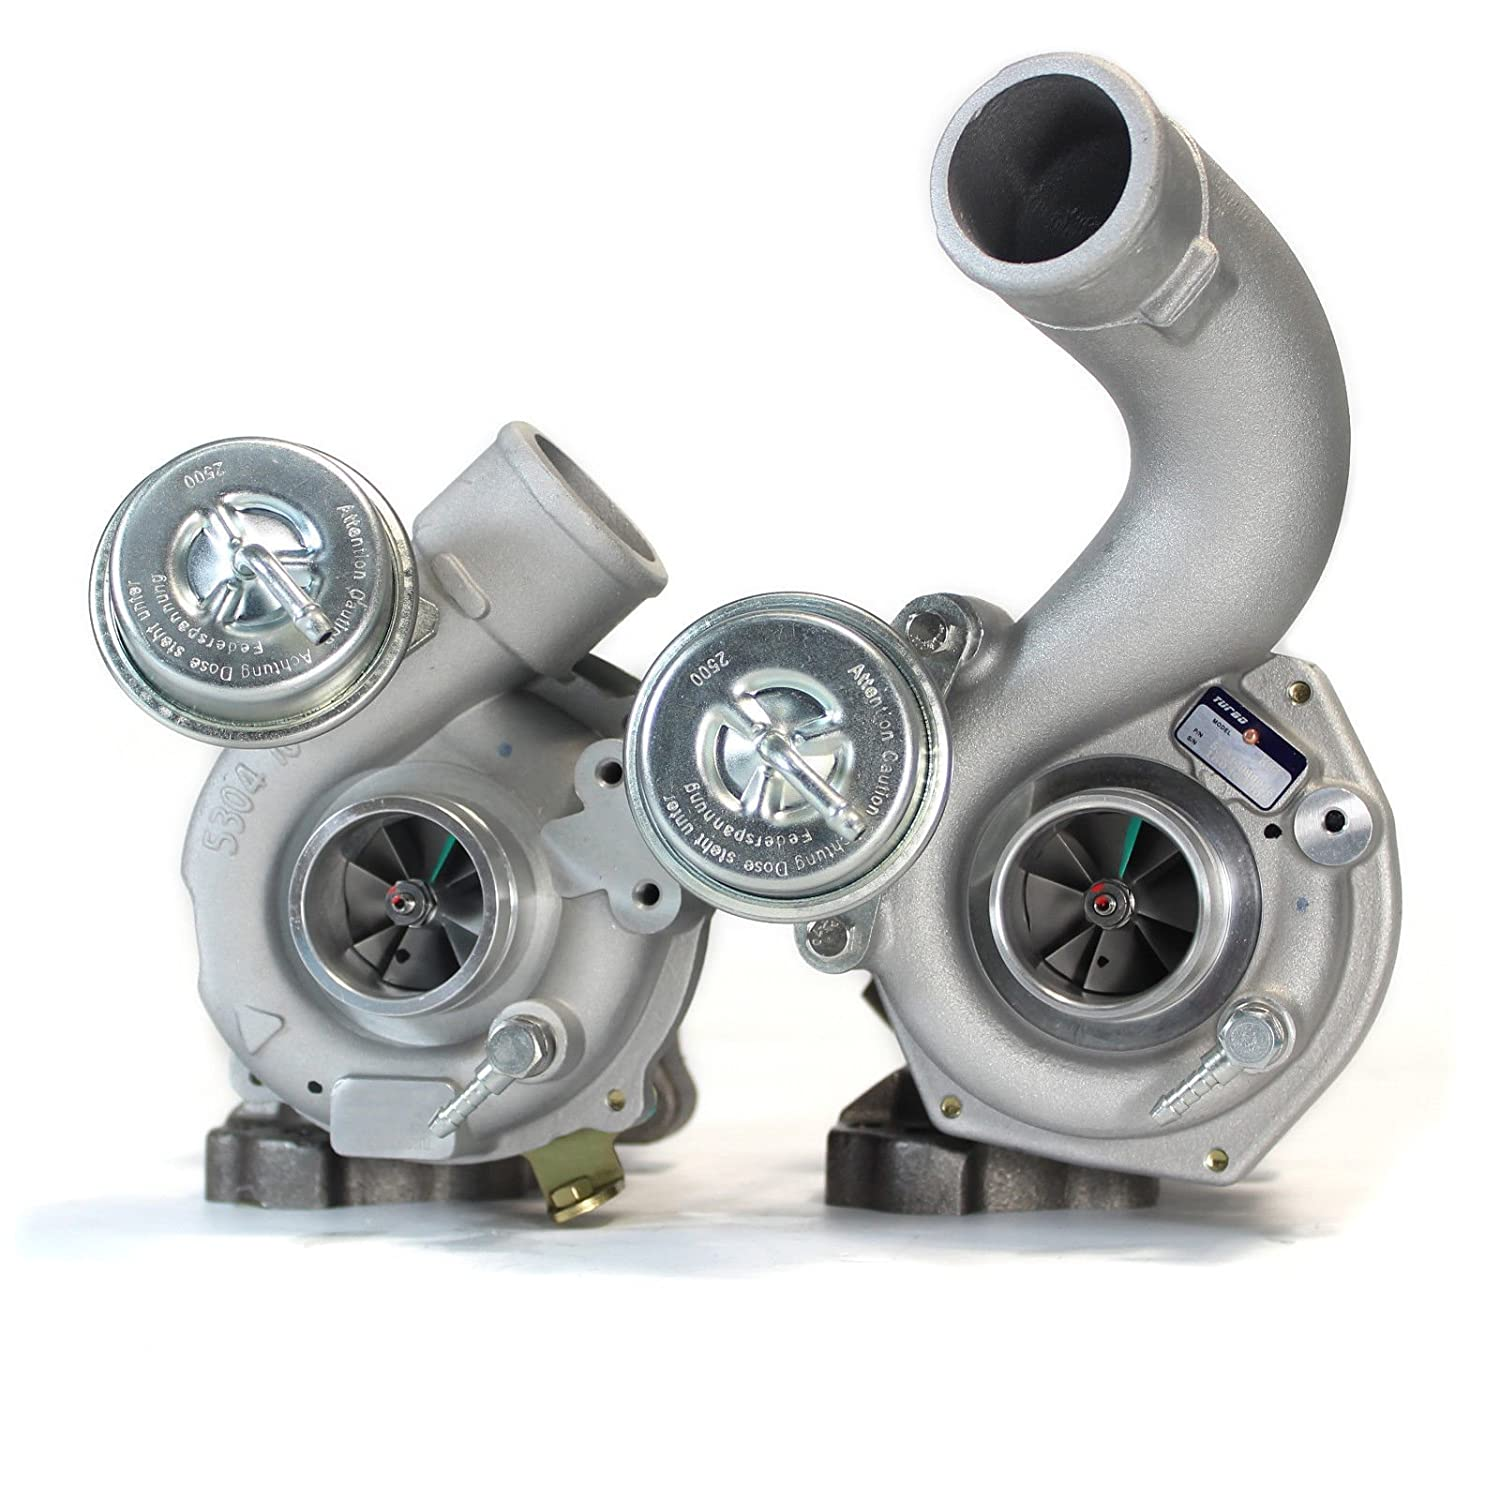 XS-Power Brand New K04 025 026 Pair Twin Turbo for Audi RS4 S4 A6 Allroda Quattro 2.7L